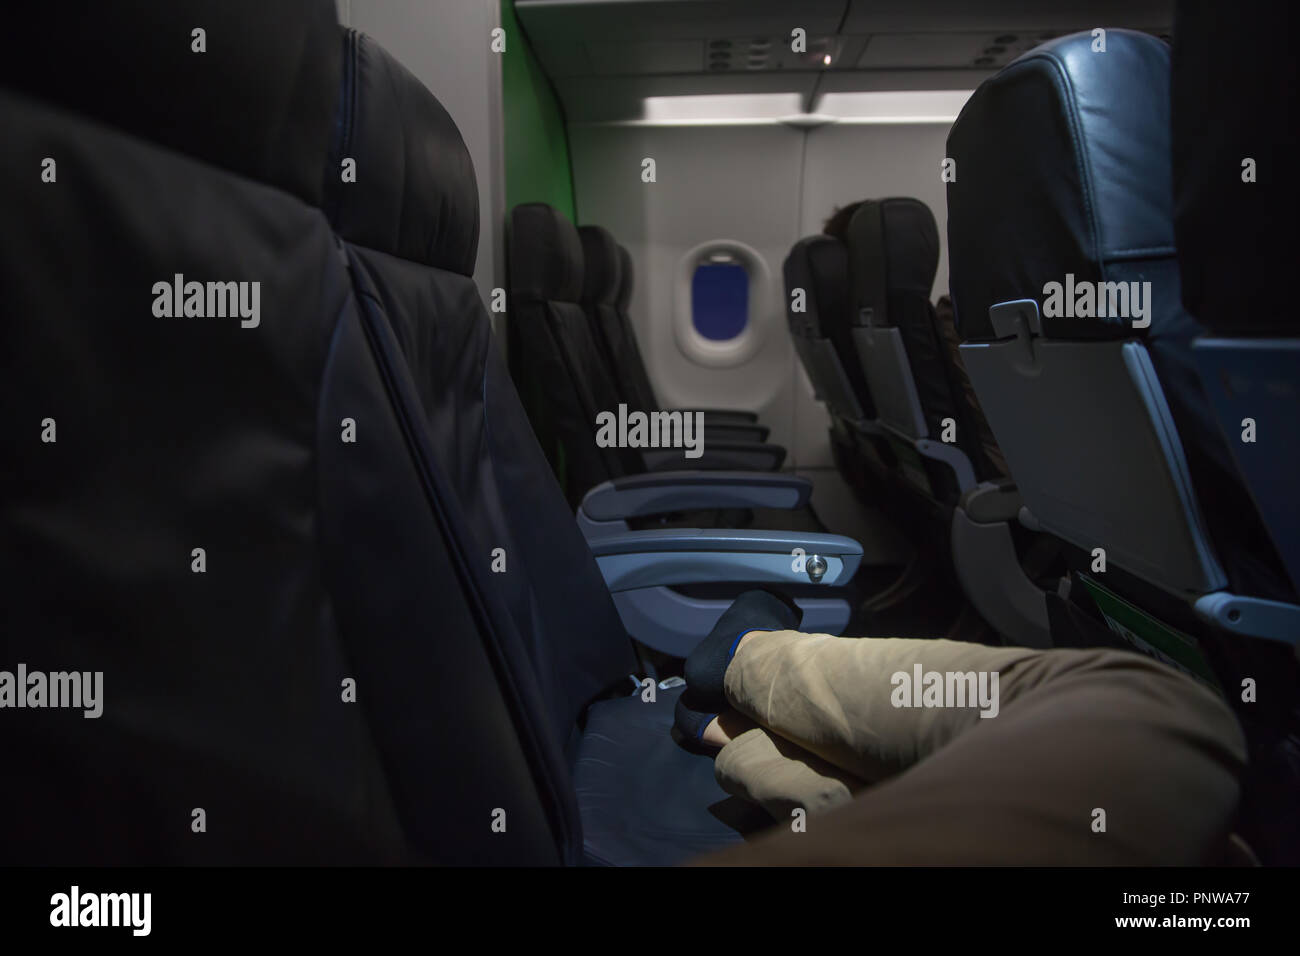 Unrecognizable man sleeps on economy seats in a plane. Close up of legs in aircraft. Travel concept Stock Photo